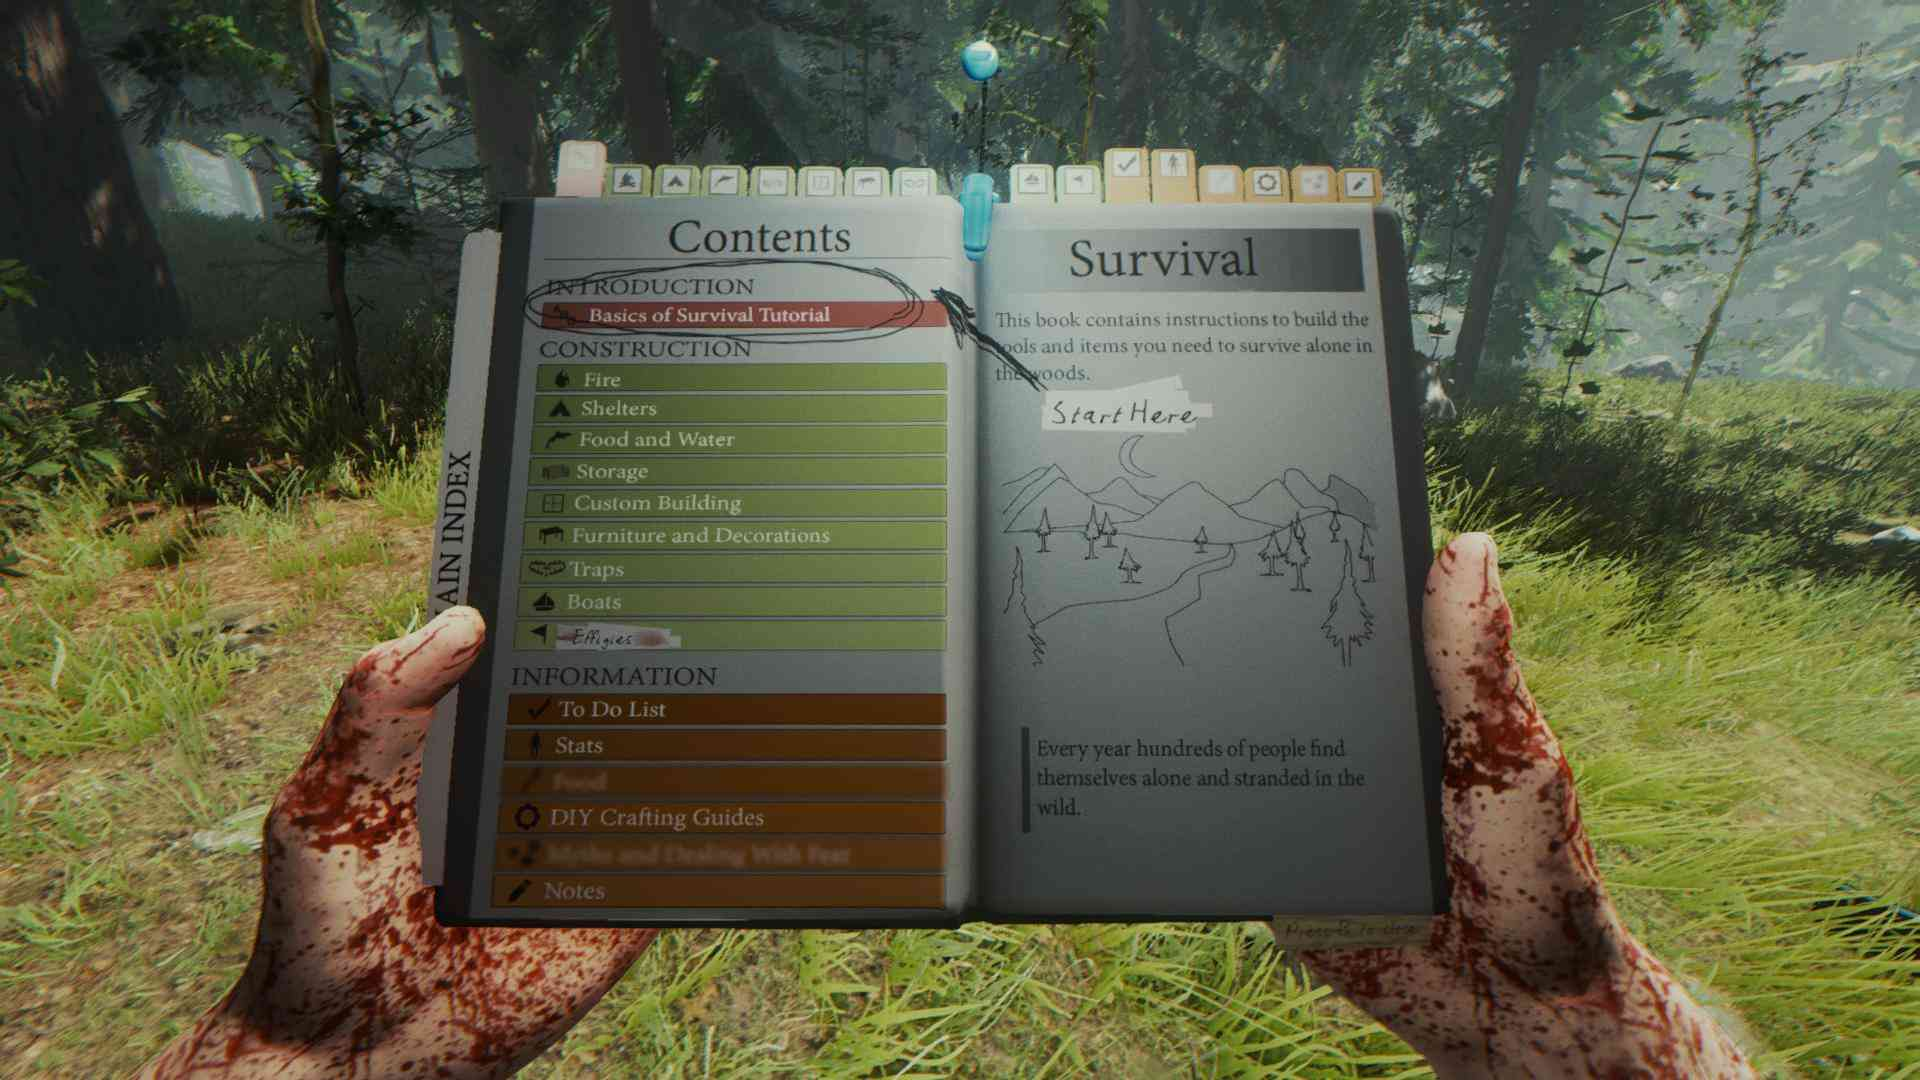 The Forest Anfänger-Guide Survival-Handbuch